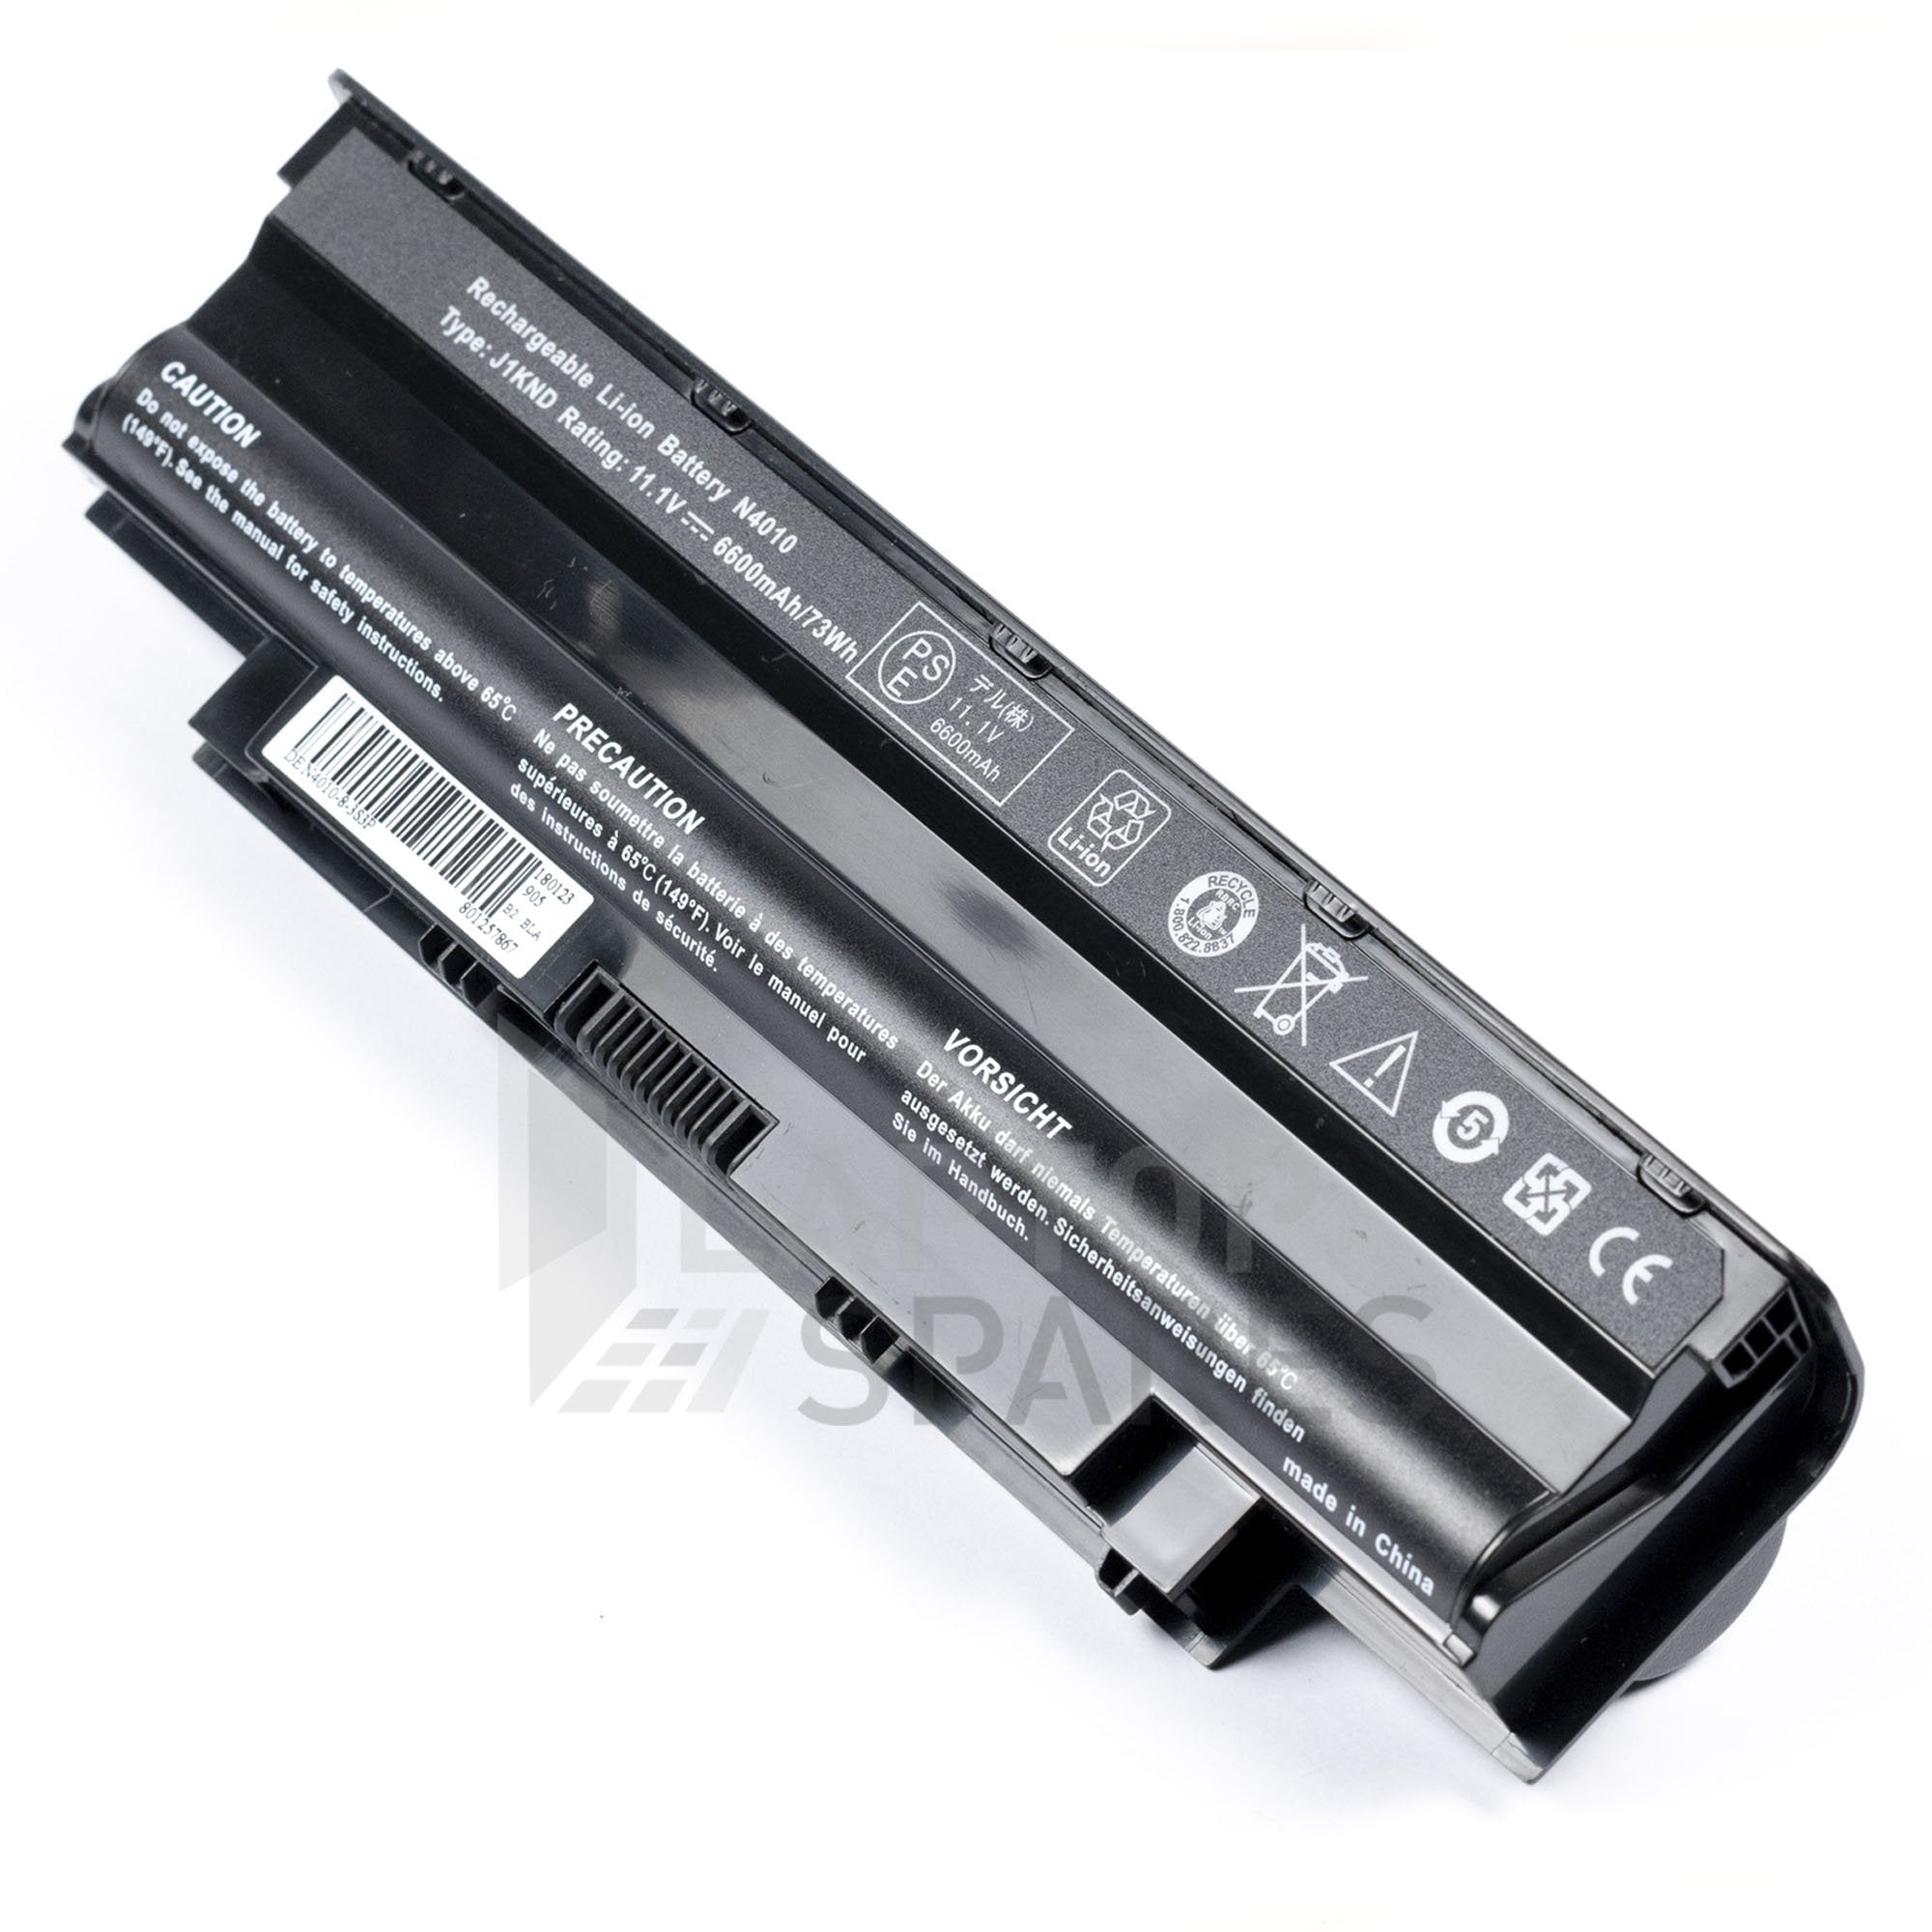 Dell Inspiron M5030R 6600mAh 9 Cell Battery